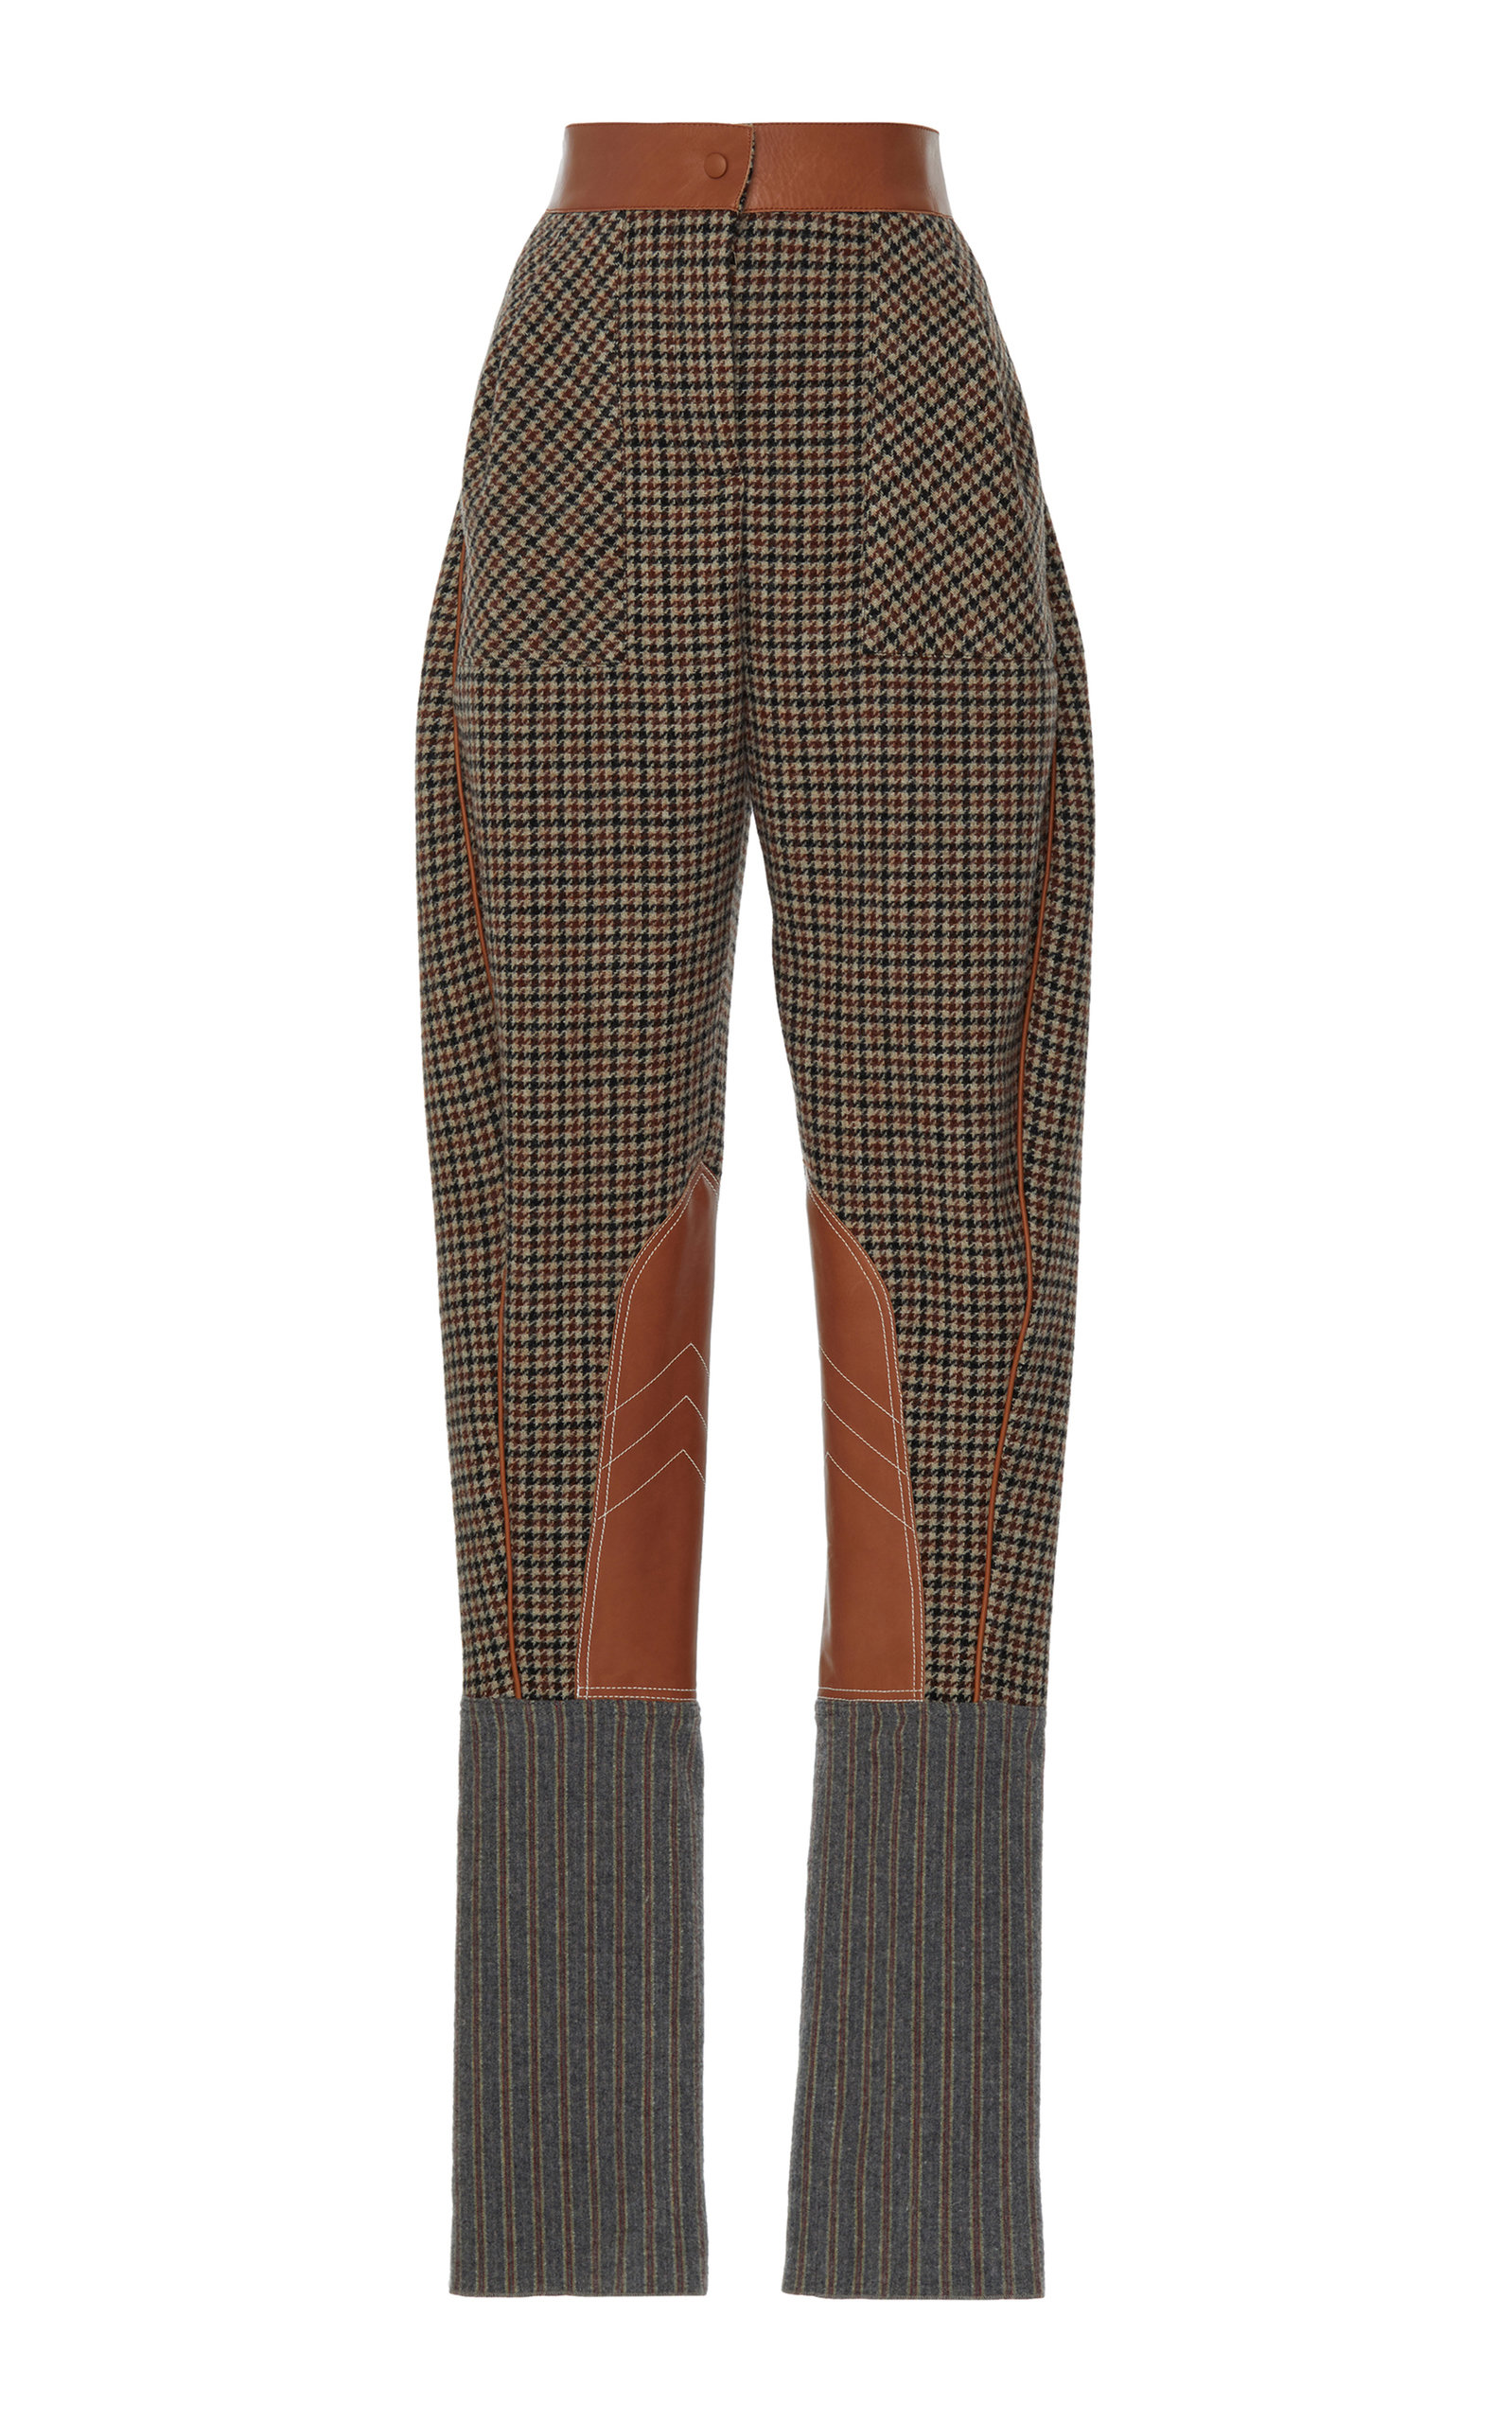 Check Carrot Trouser Loewe The Best Store To Get Clearance Extremely Online Shop From China cfD5j3dV